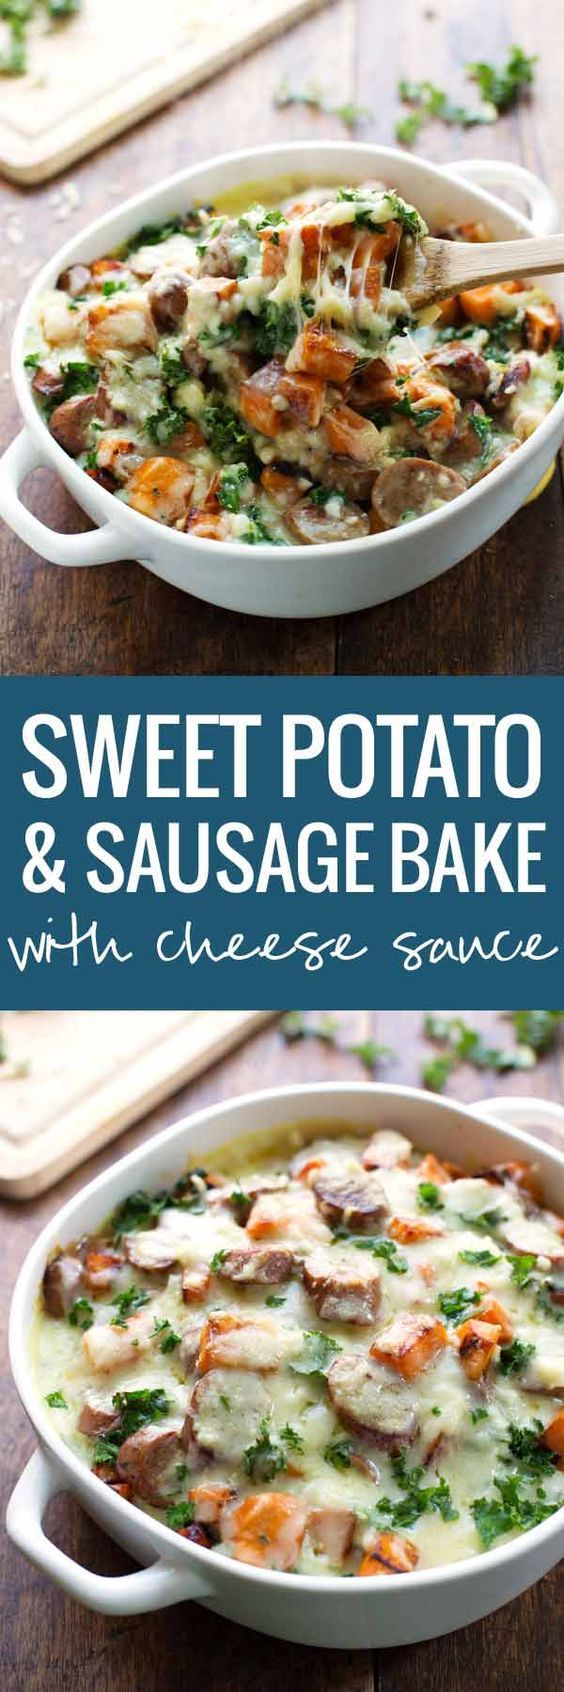 Sweet Potato, Kale, and Sausage Bake with White Cheese Sauce - comfort food featuring a handful of pantry staples and a few super healthy ingredients.   pinchofyum.com- Make this with Johnsonville Italian Sausage.